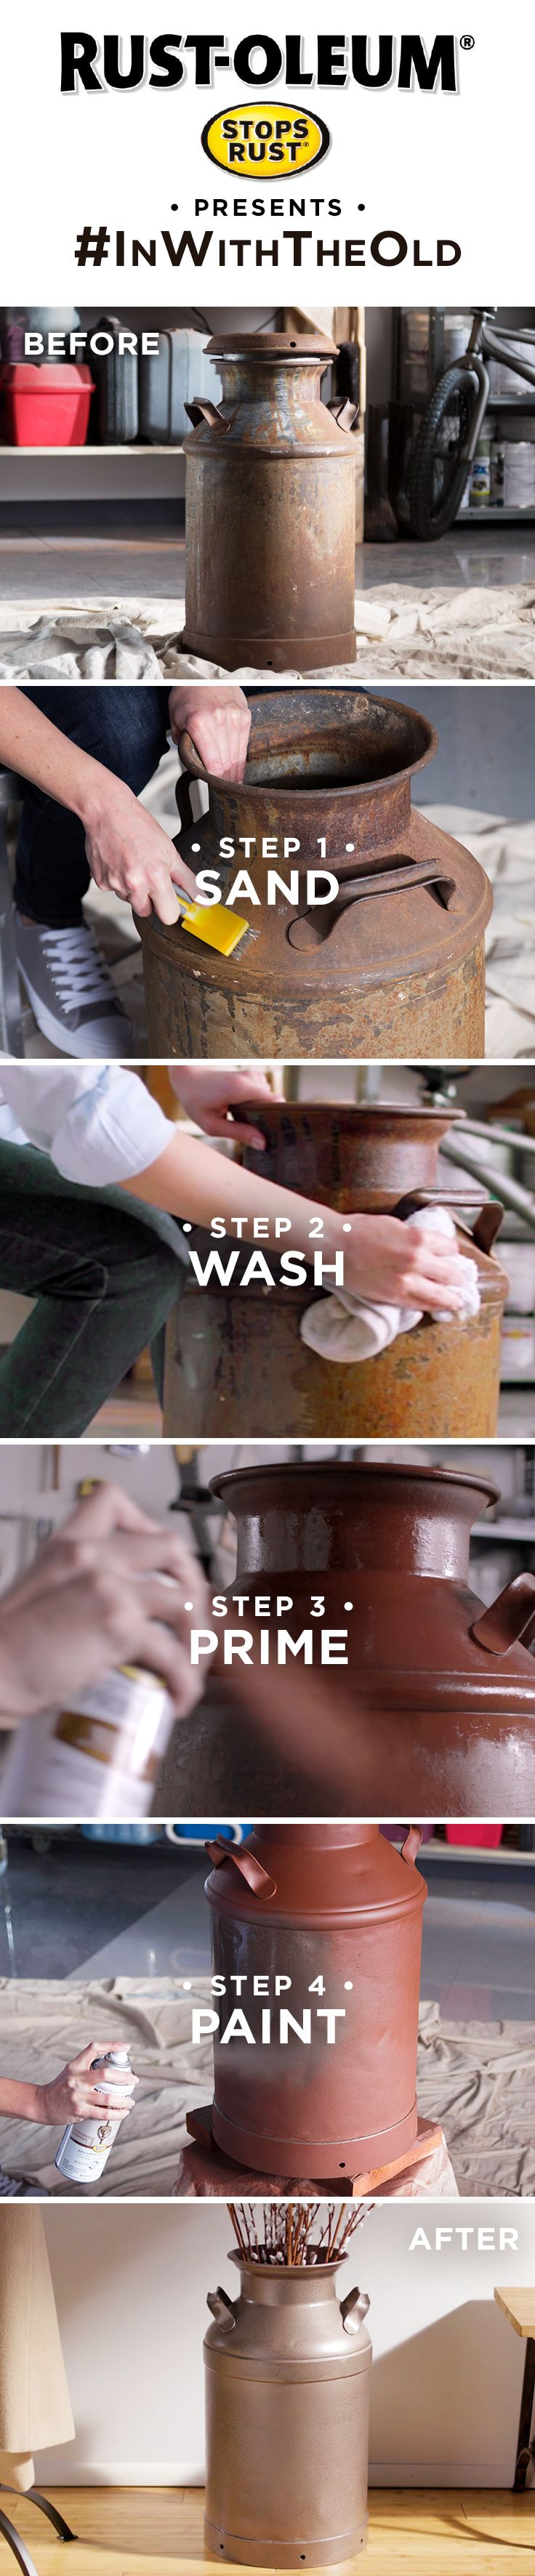 Turn that rusty old milk jug into your newest decoration. Learn how easy it is to transform with Stops Rust.  Whether a vintage piece of decor, dated furniture, rusty metal table or old chair, you can